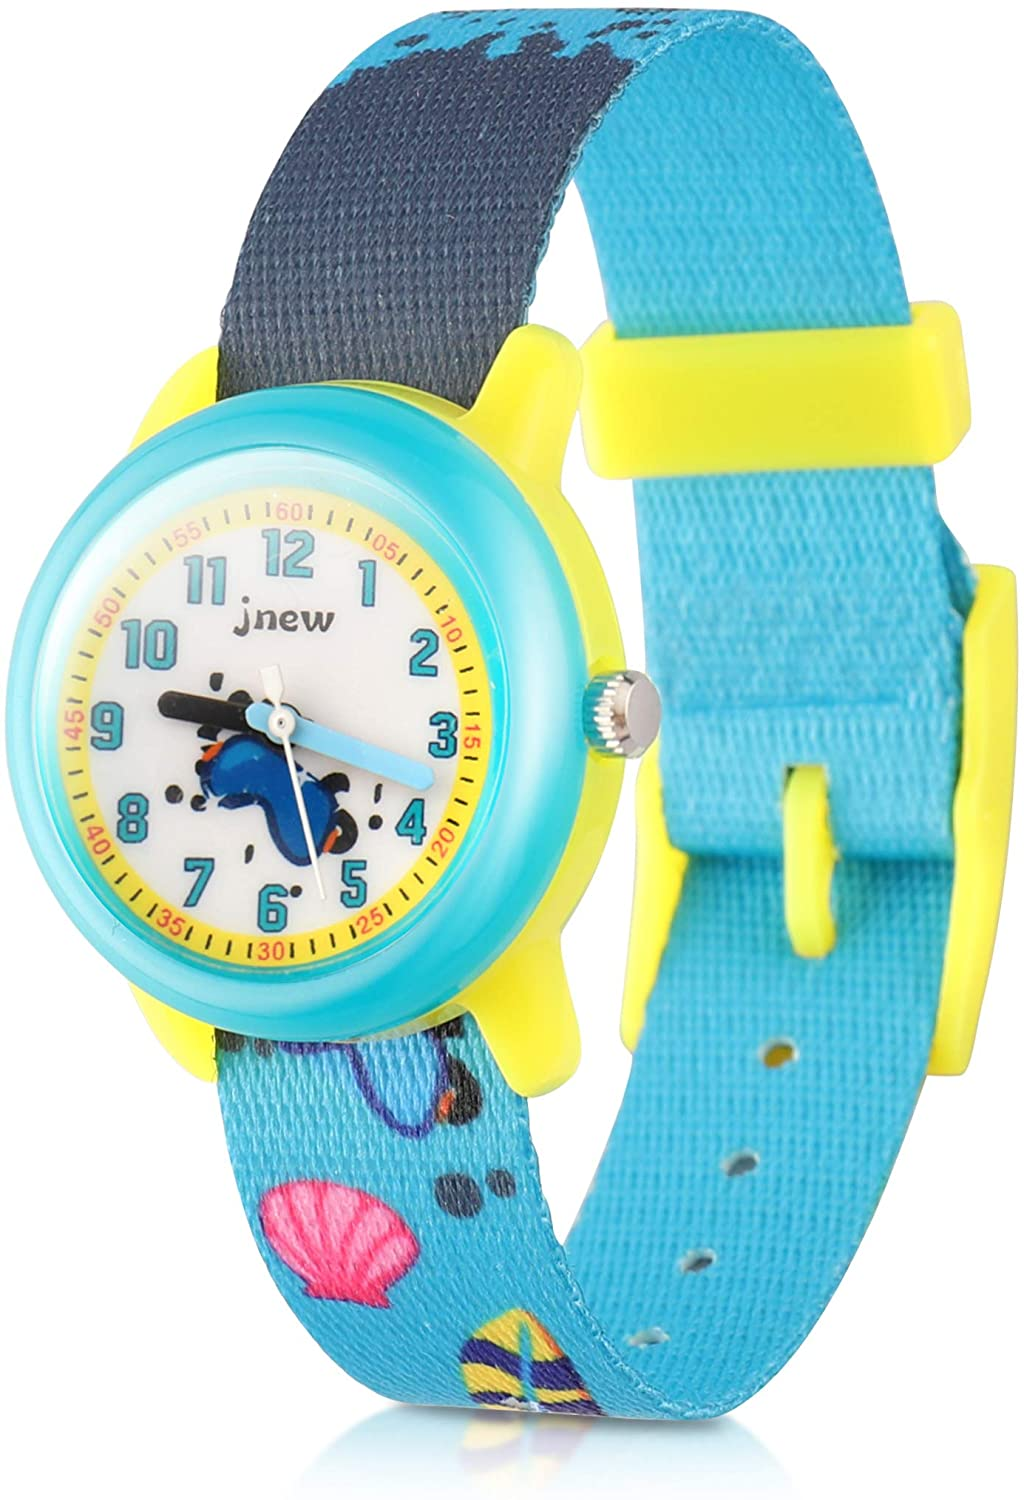 2018 New Cartoon Children's Quartz Waterproof Watch Comes with an Adjustable, Washable Stretch Braid Kids' Time Teacher